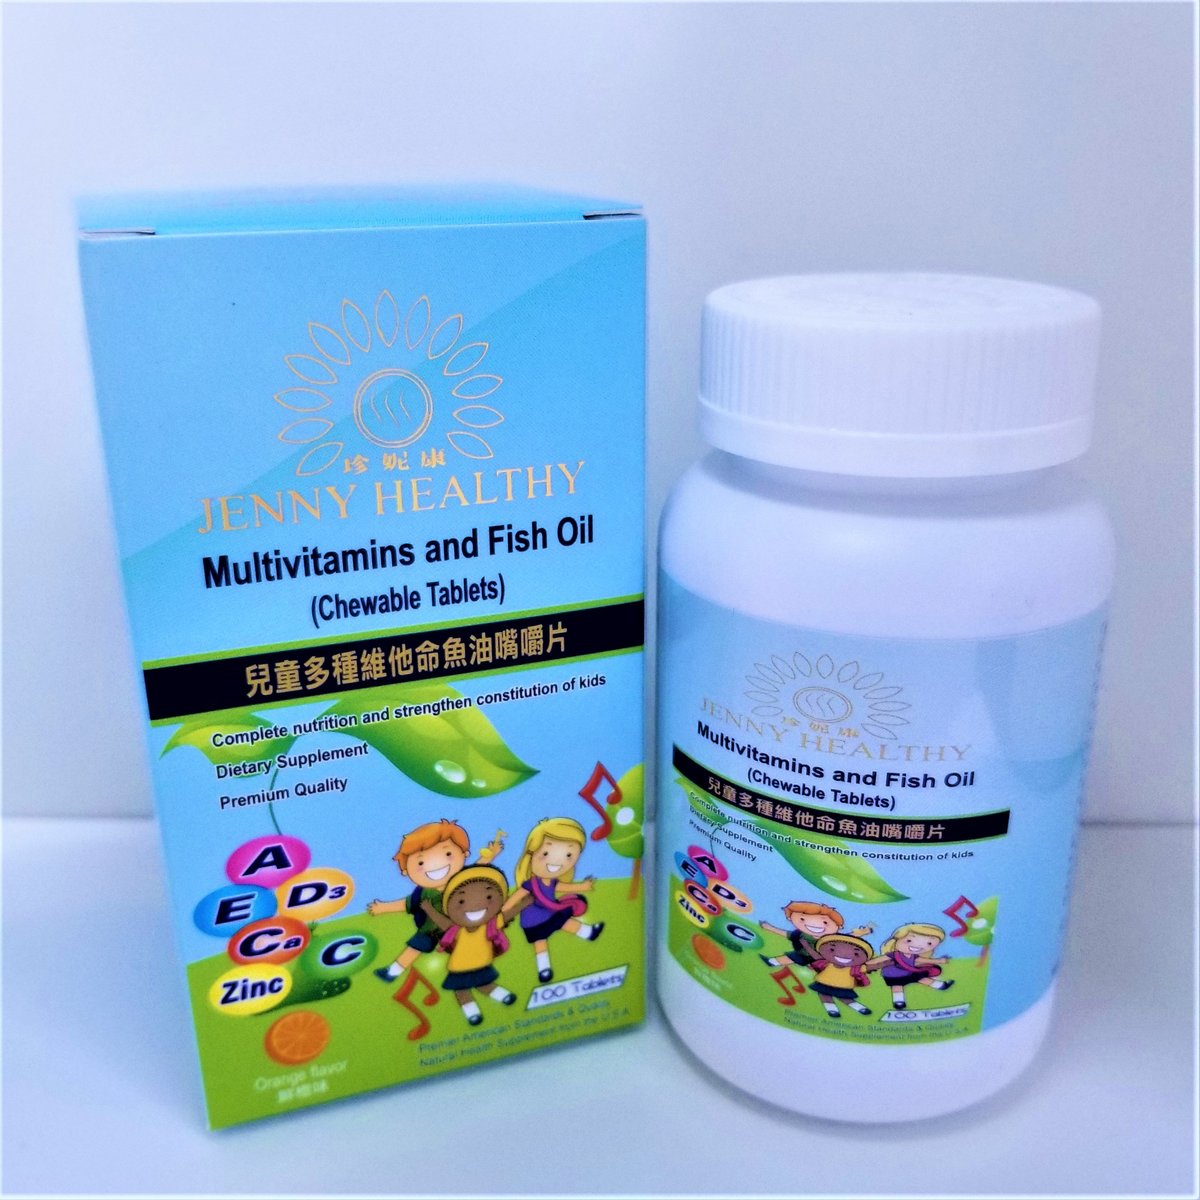 Jenny Healthy Multivitamins and fish oil chewable 100 tablets